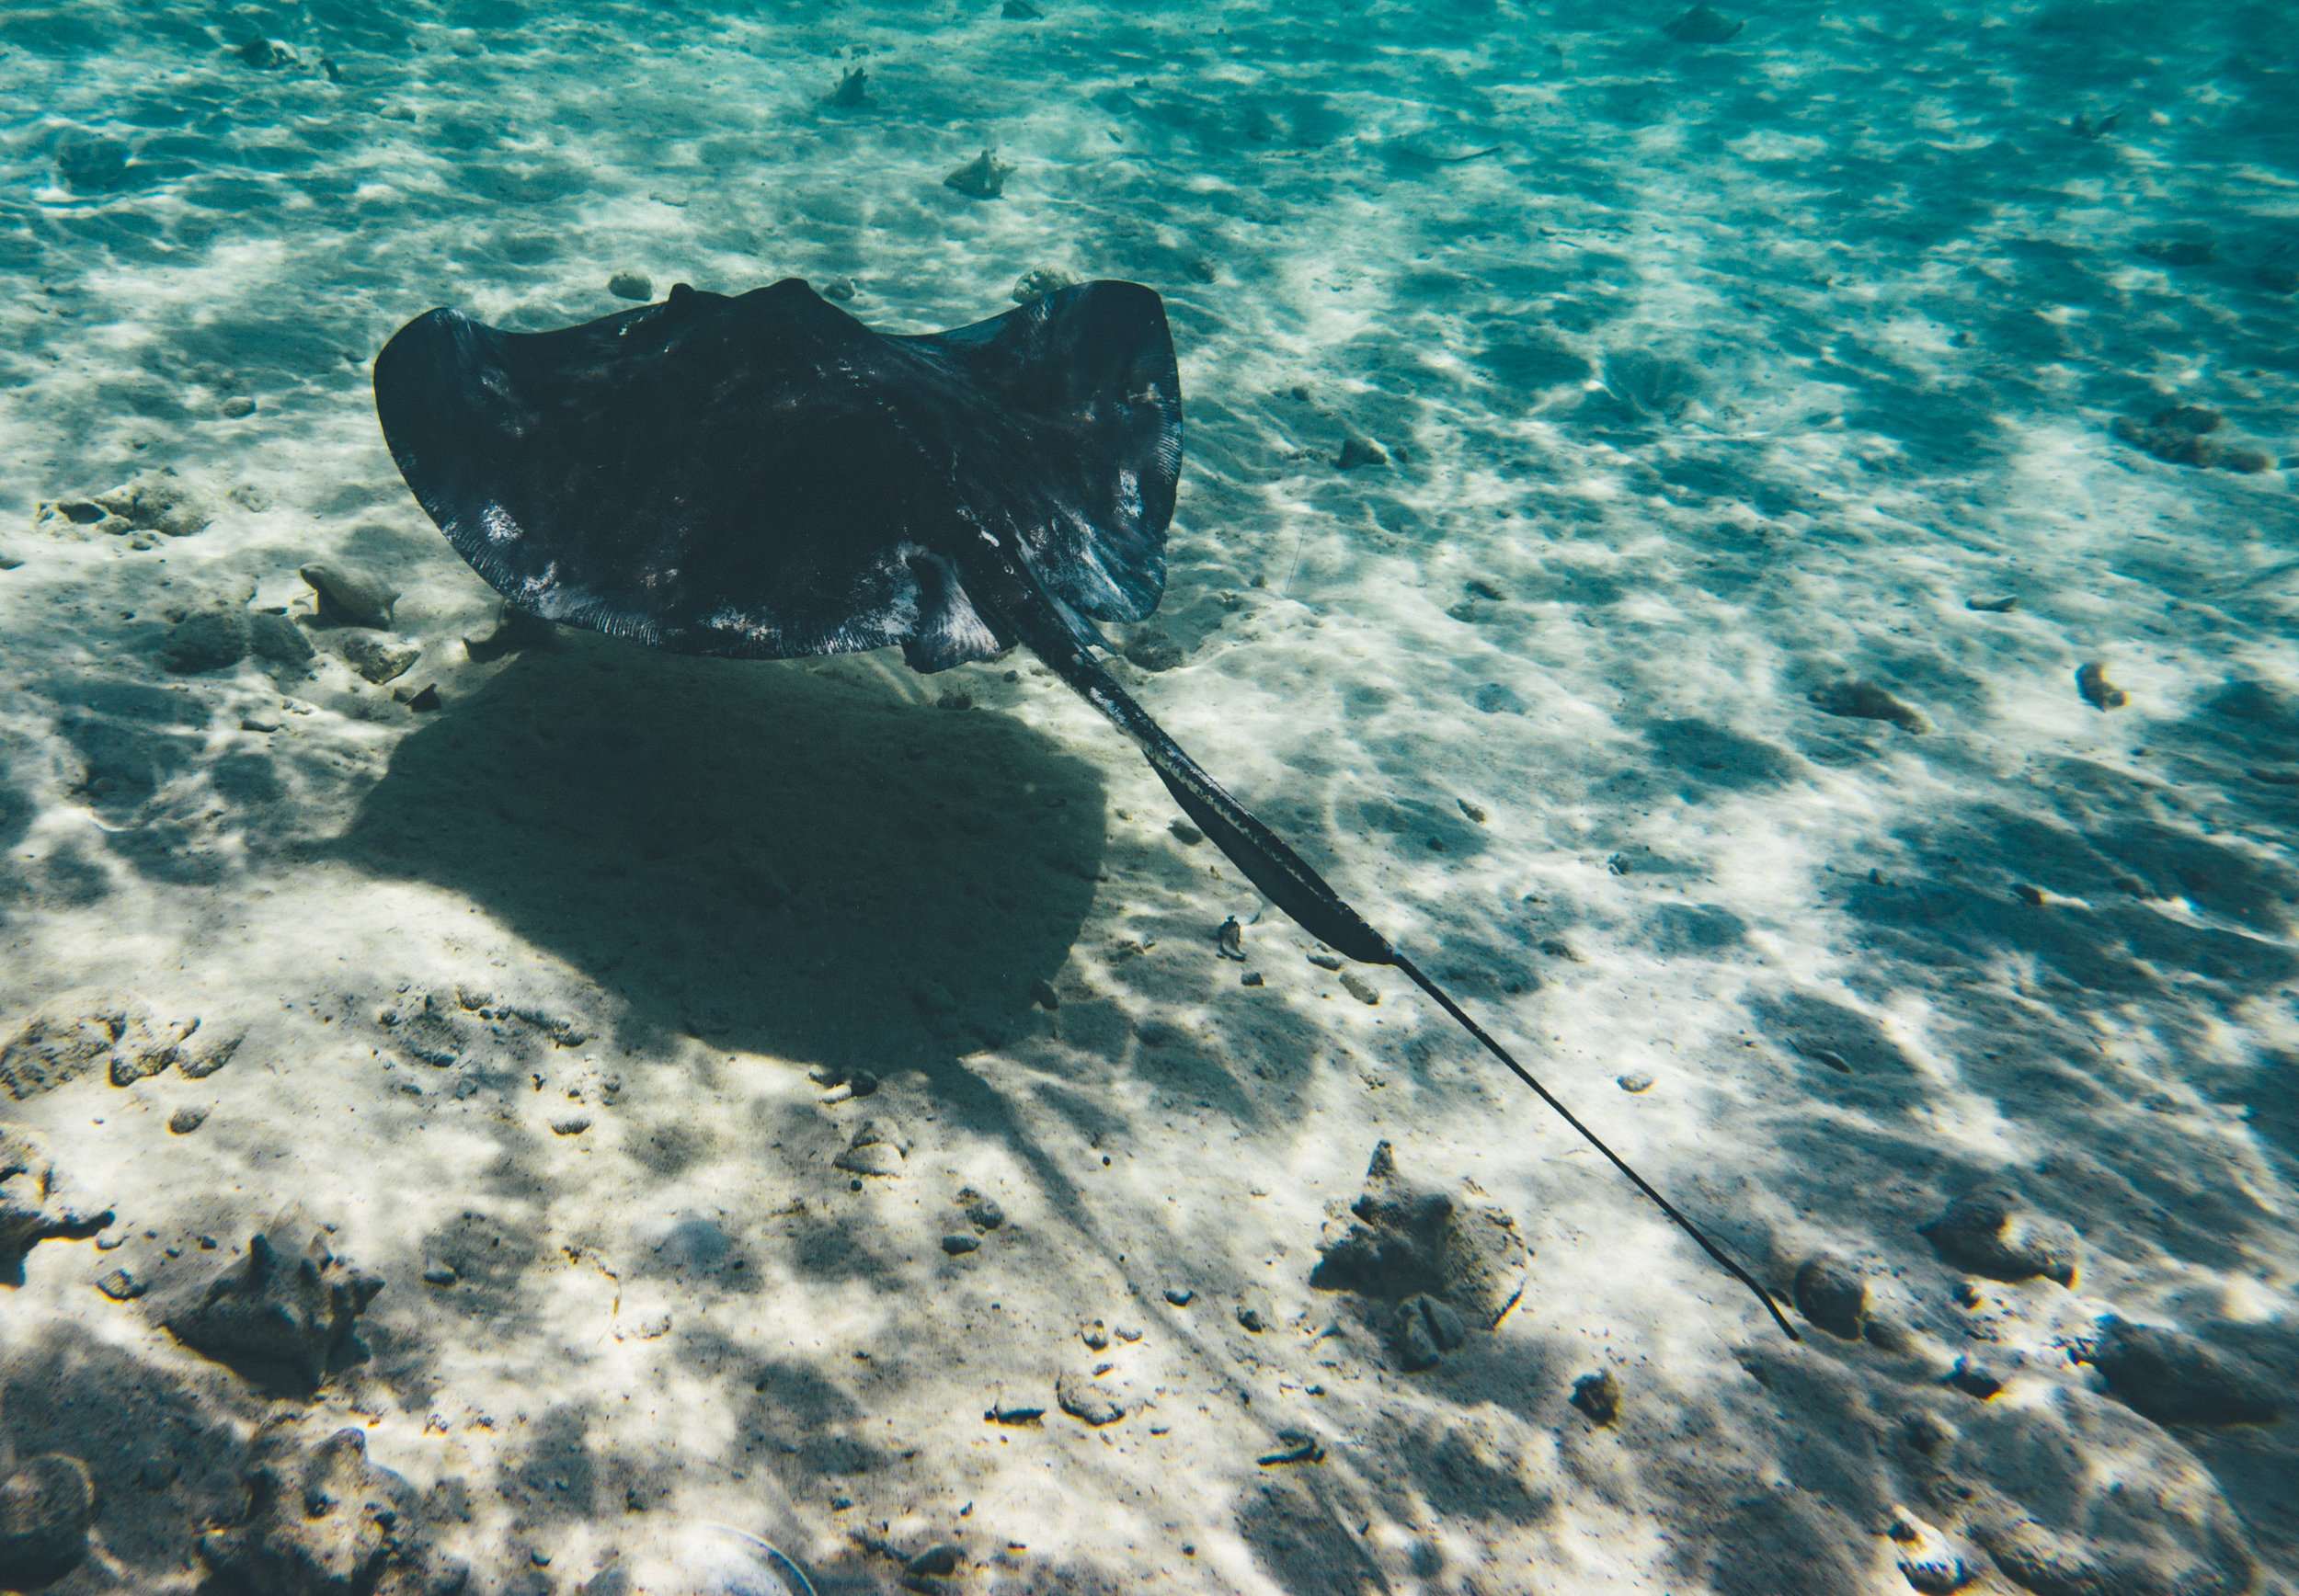 Stingray sighting just off the shore at our AirBnB